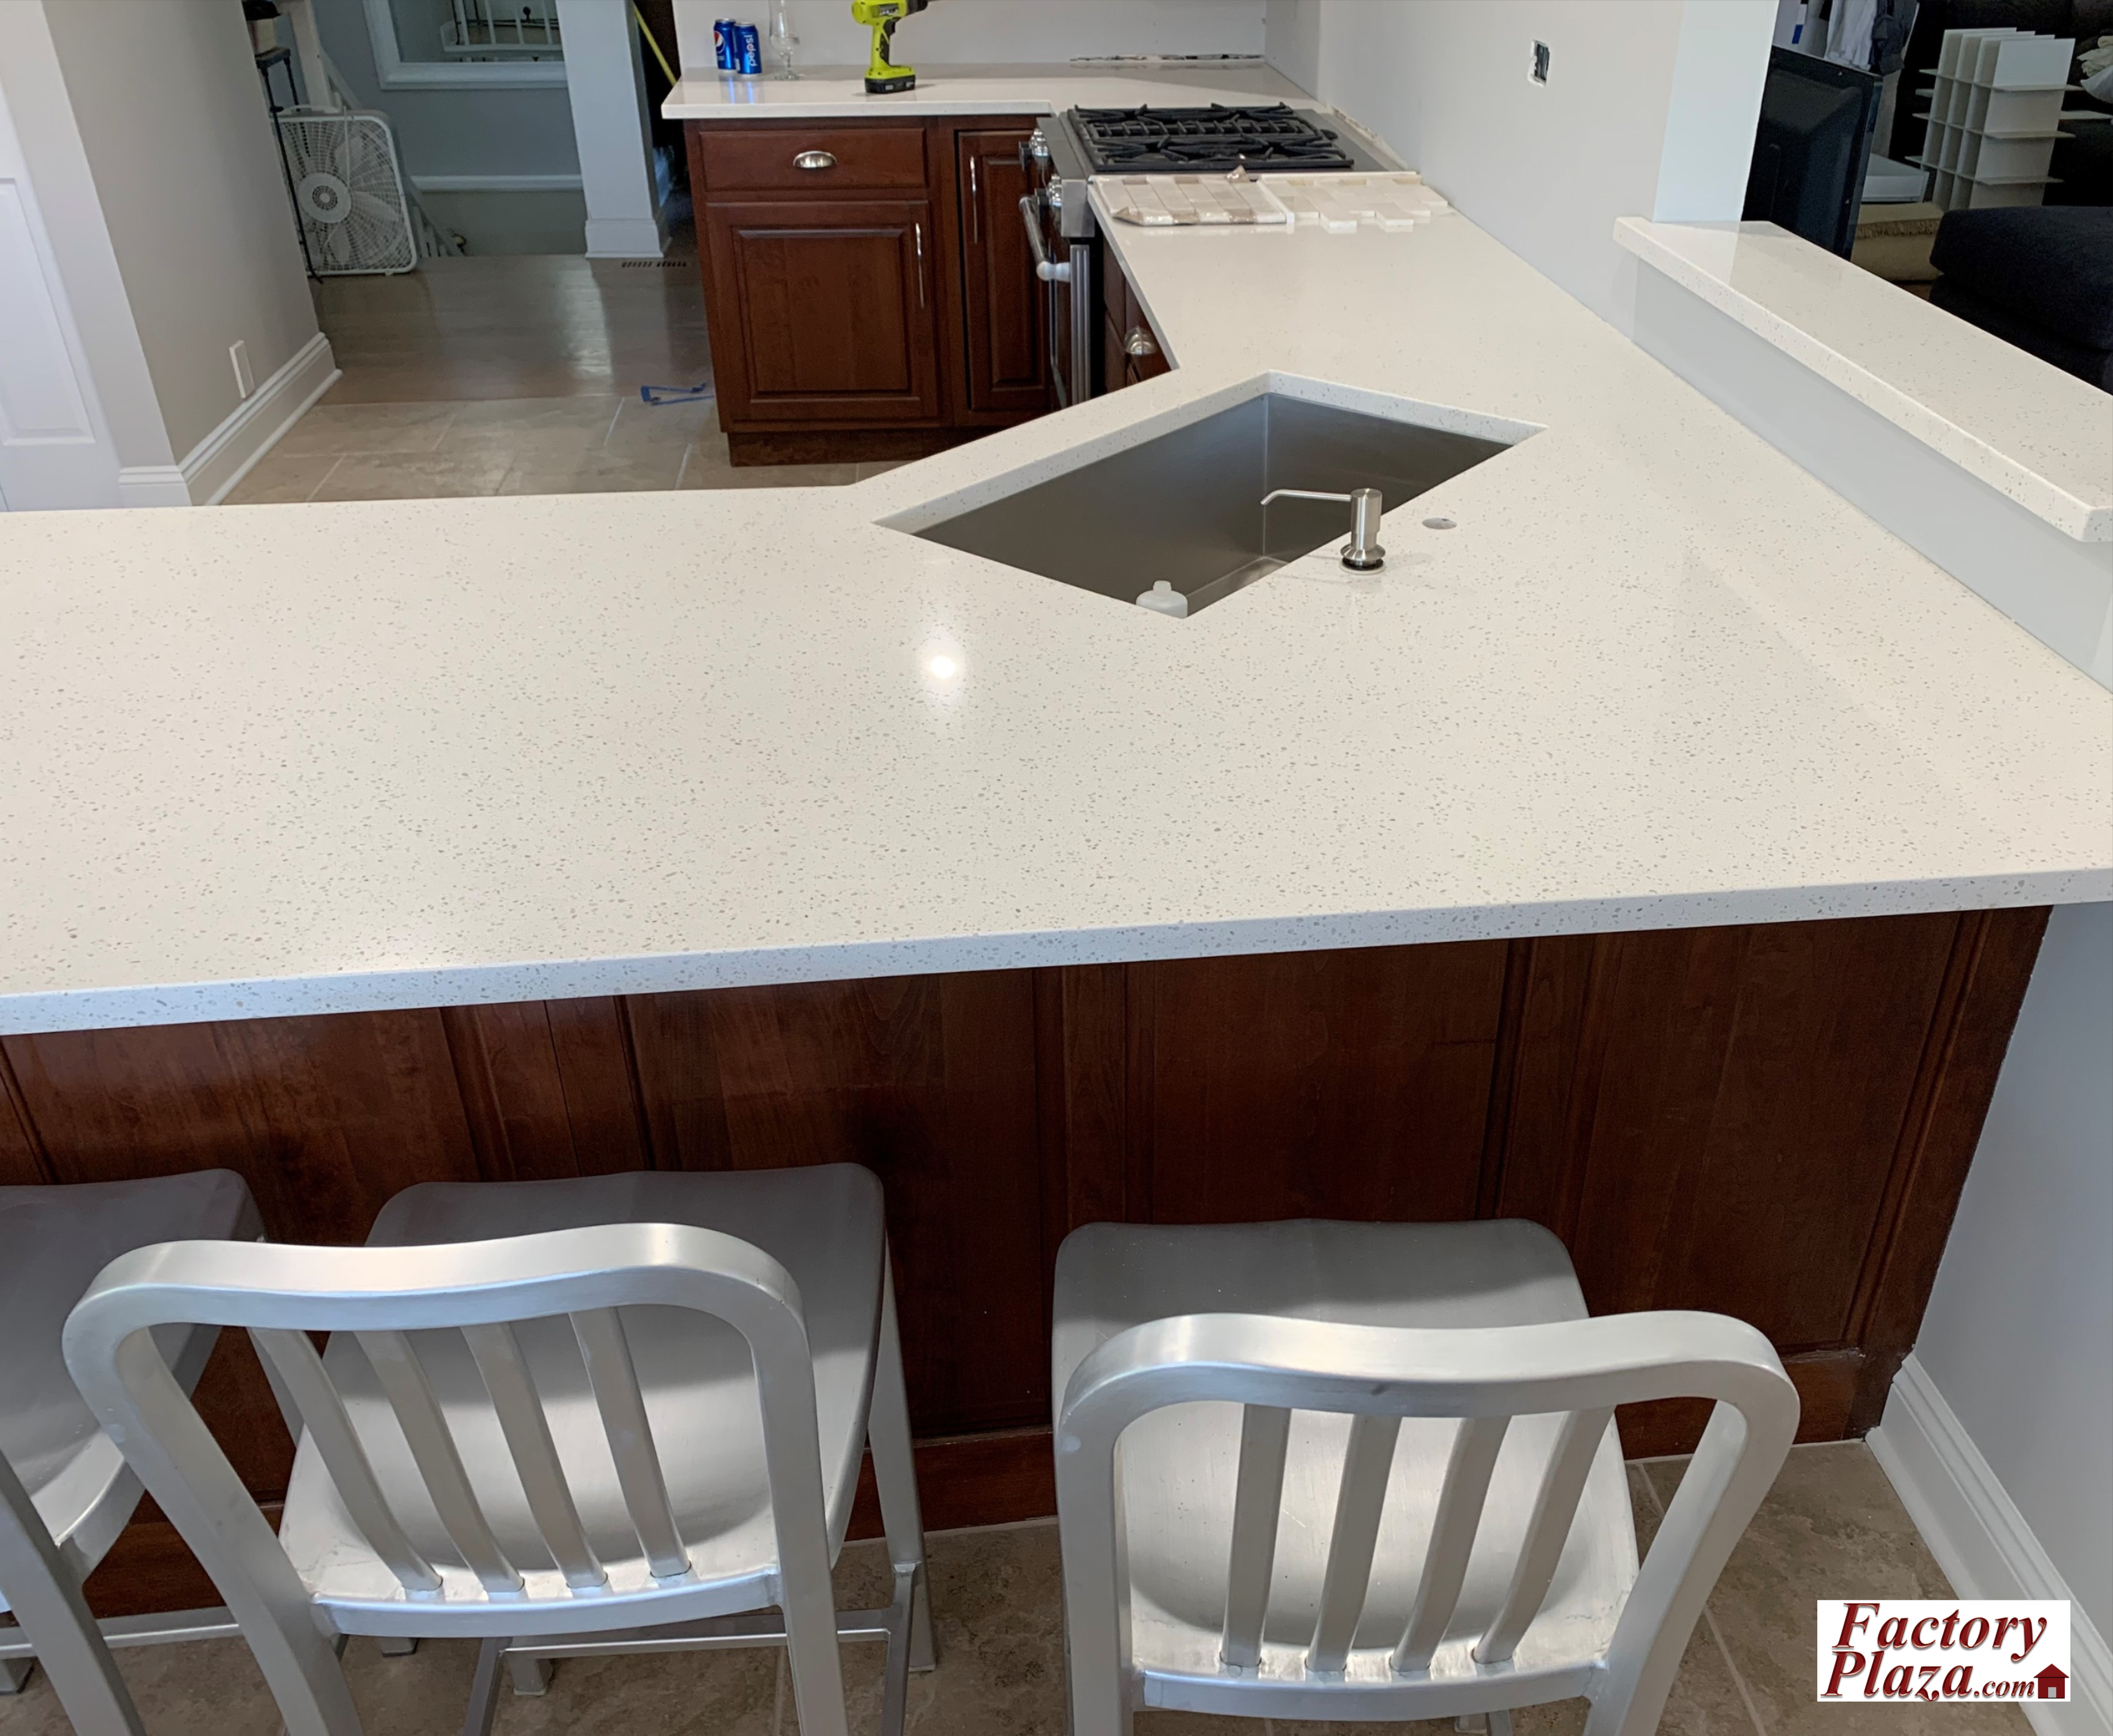 Dark Kitchen Cabinets And White Quartz Is One Of Our Favorite Co Kitchen Cabinets And Countertops Cabinets And